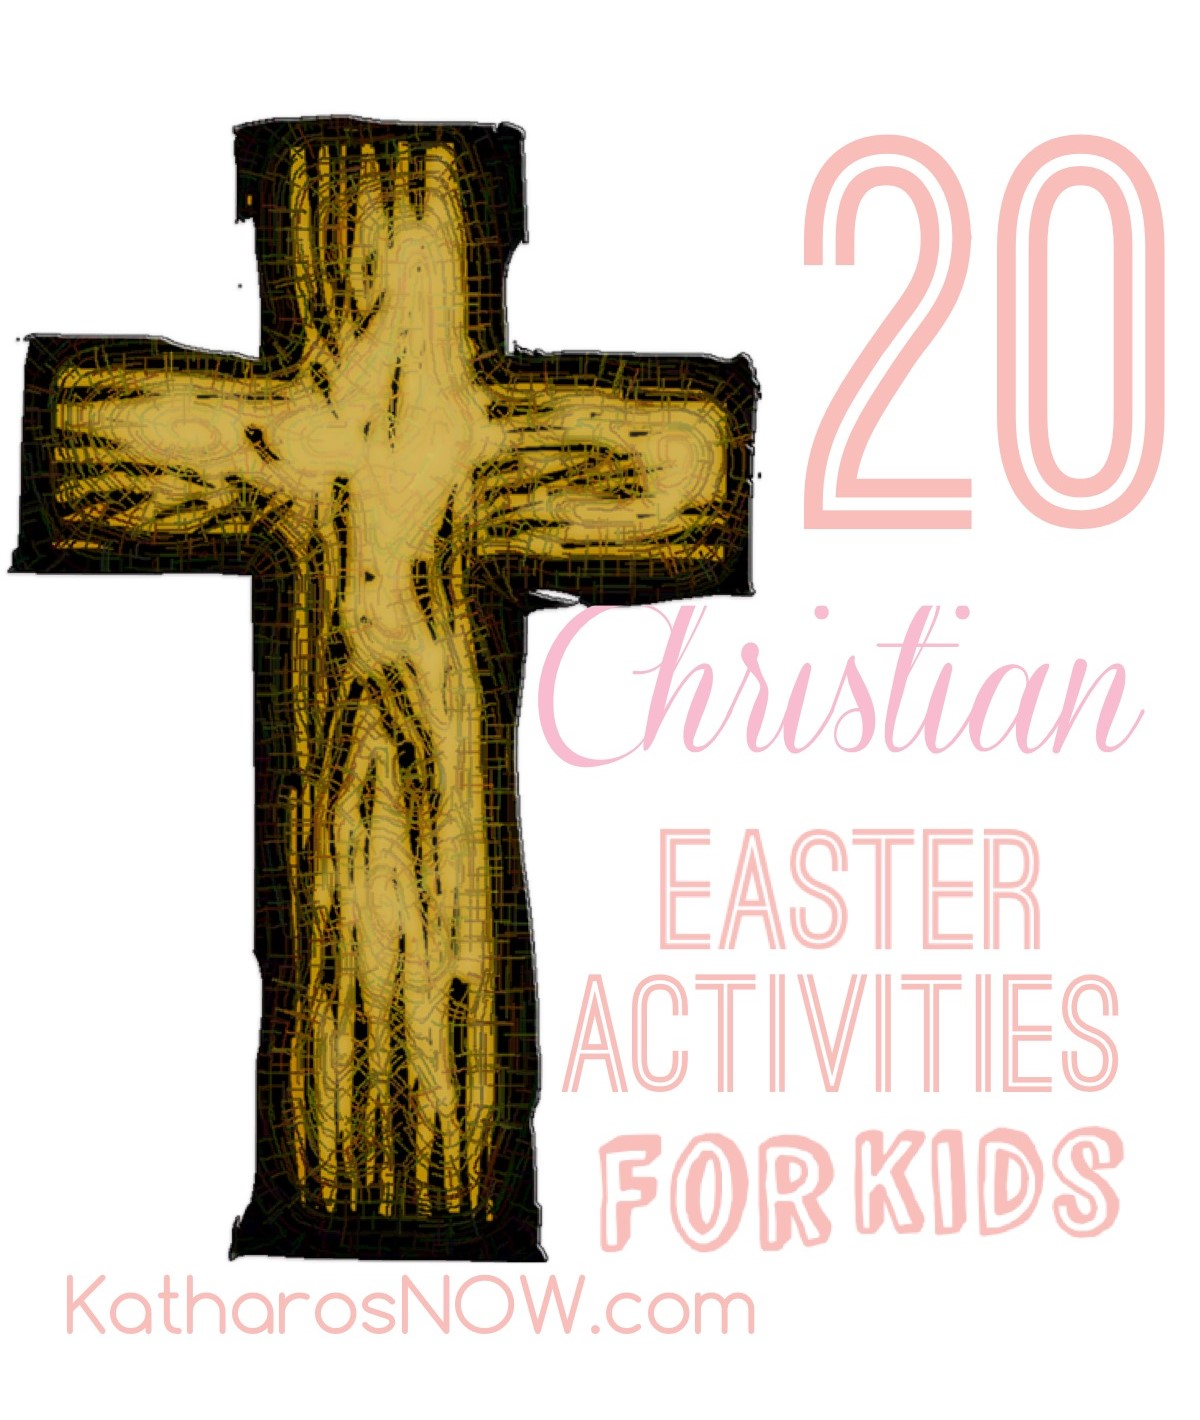 20 Christian Easter Activities For Kids Katharosnow